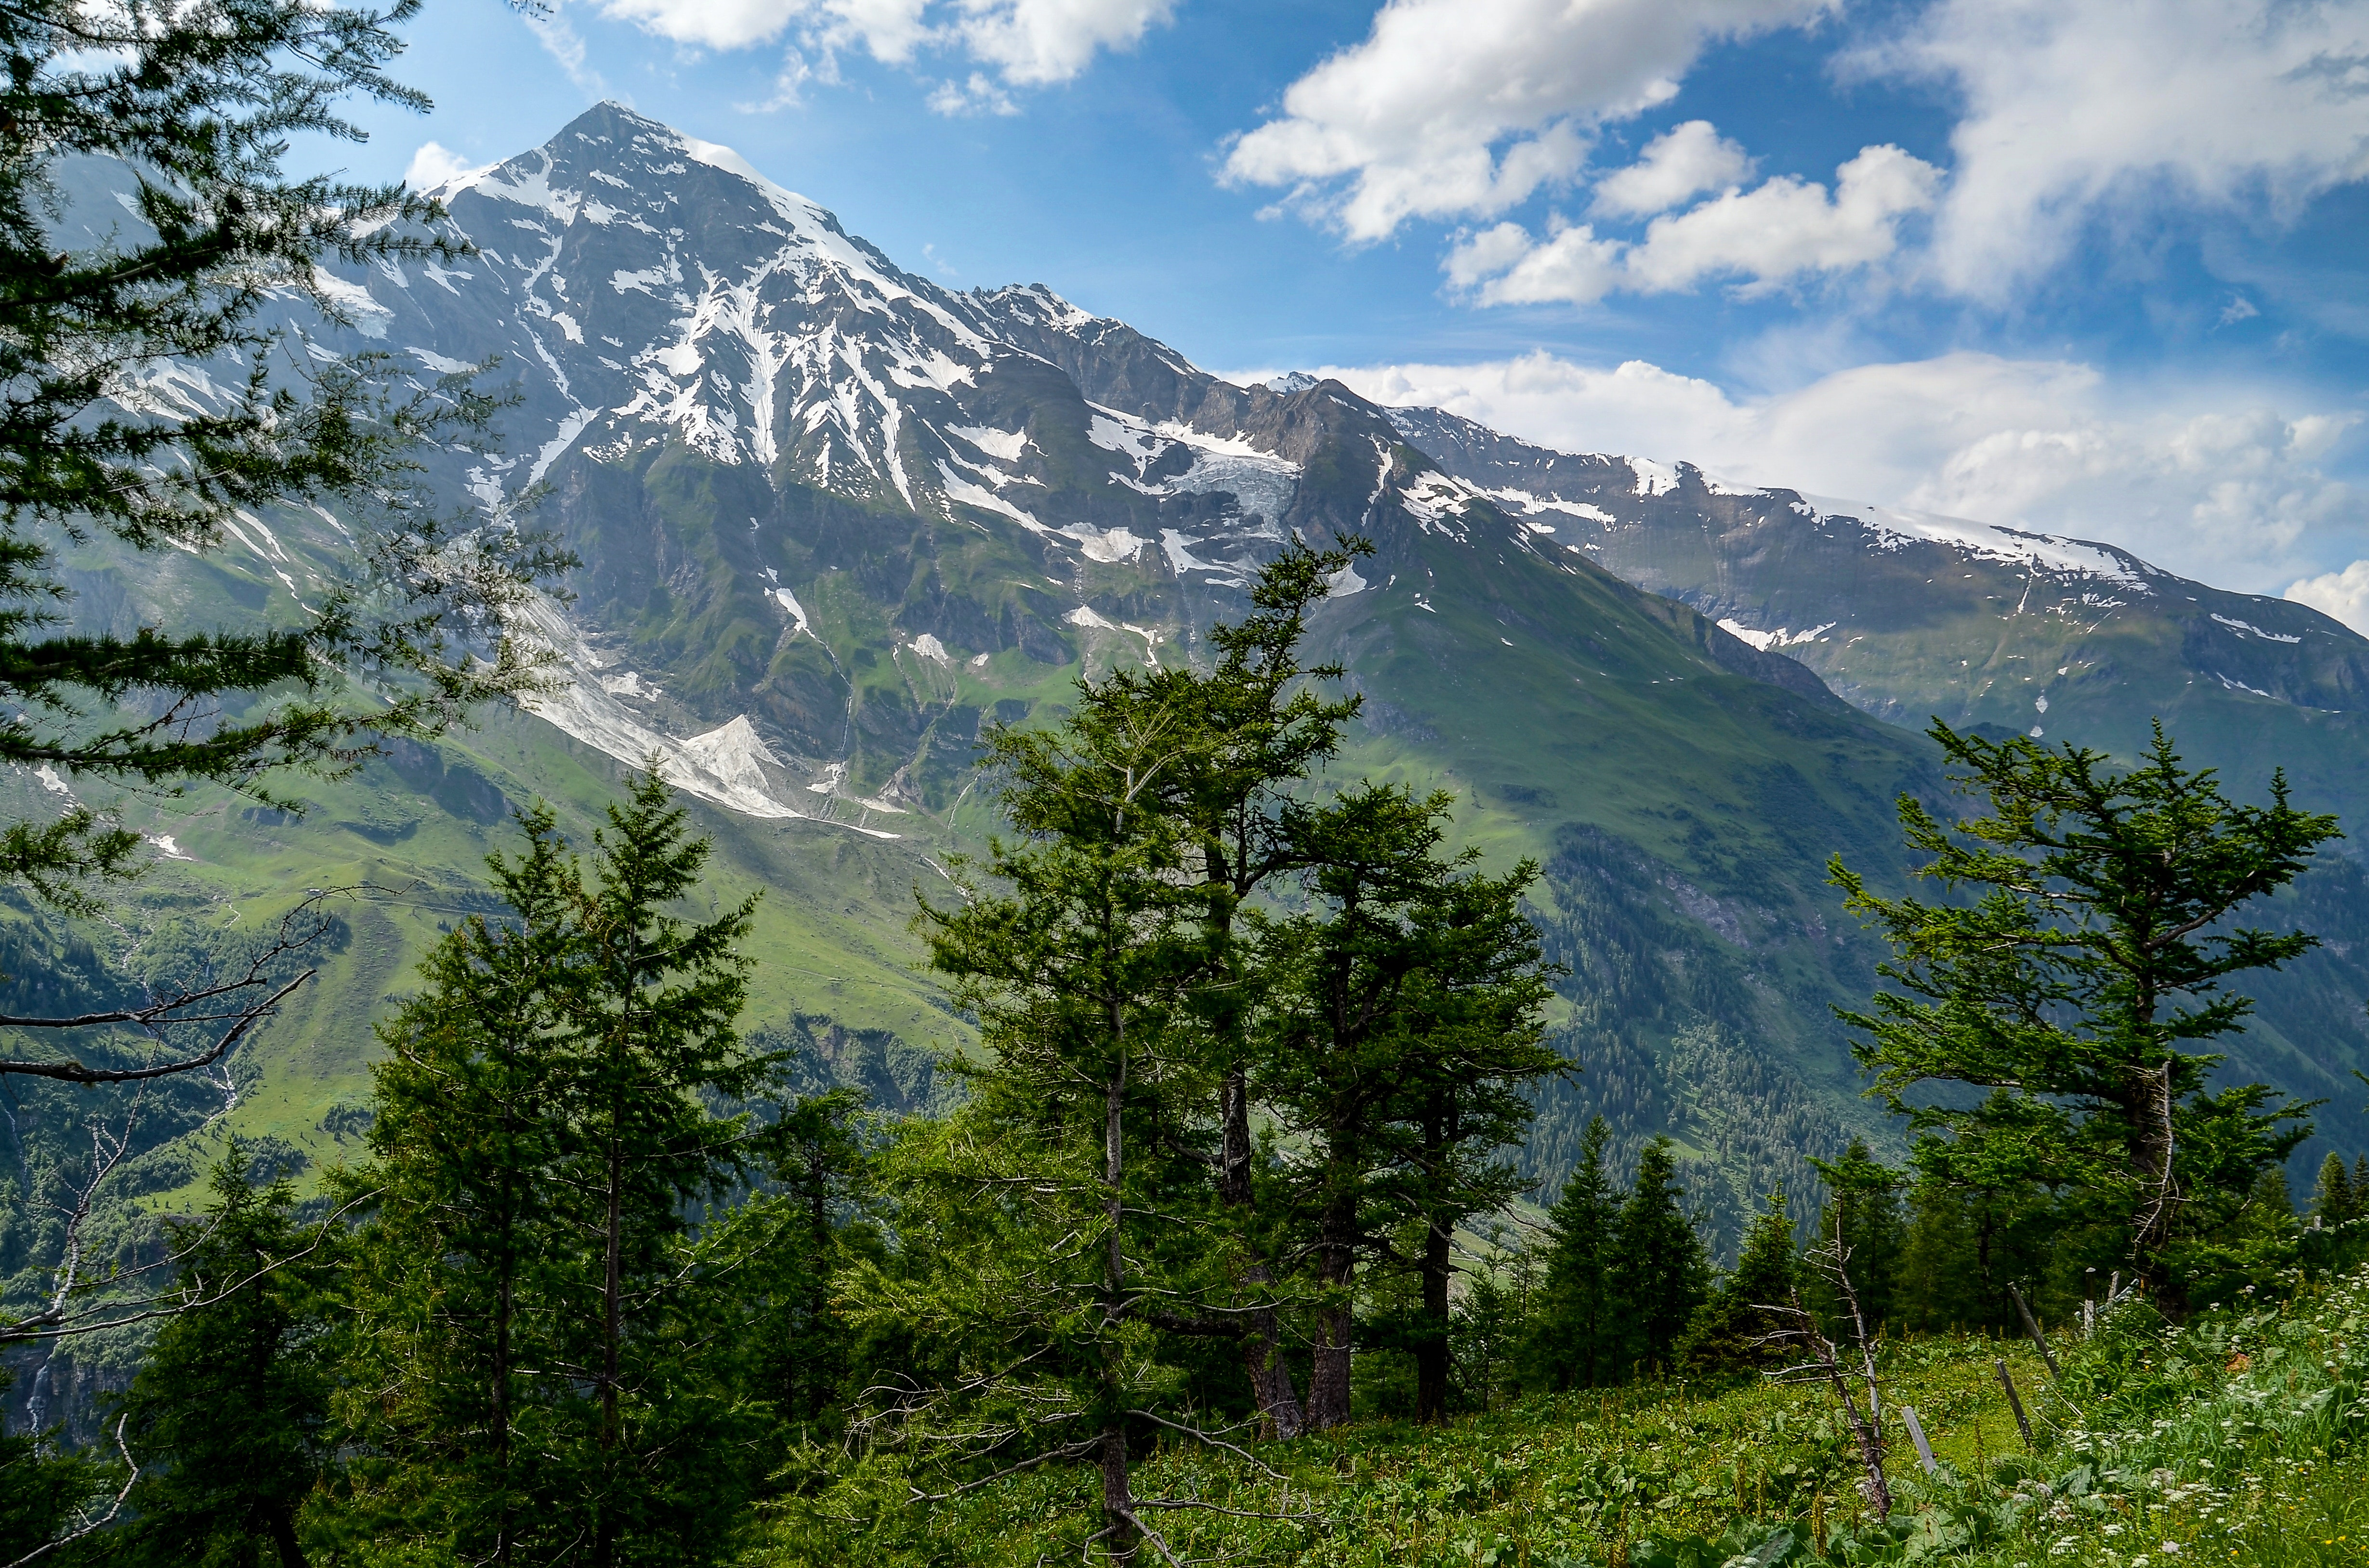 Trees in Front of Mountain, Alps, Mountain, Valley, Trees, HQ Photo